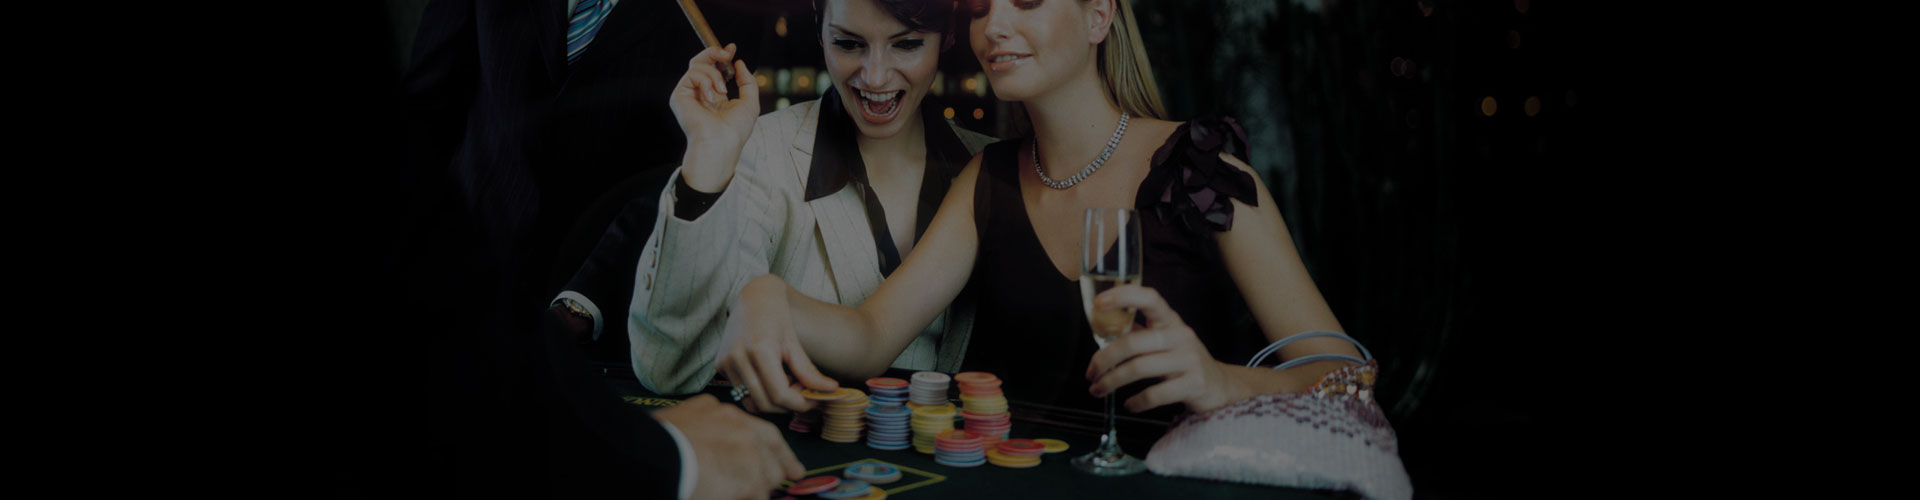 online casino william hill kostenlos ohne